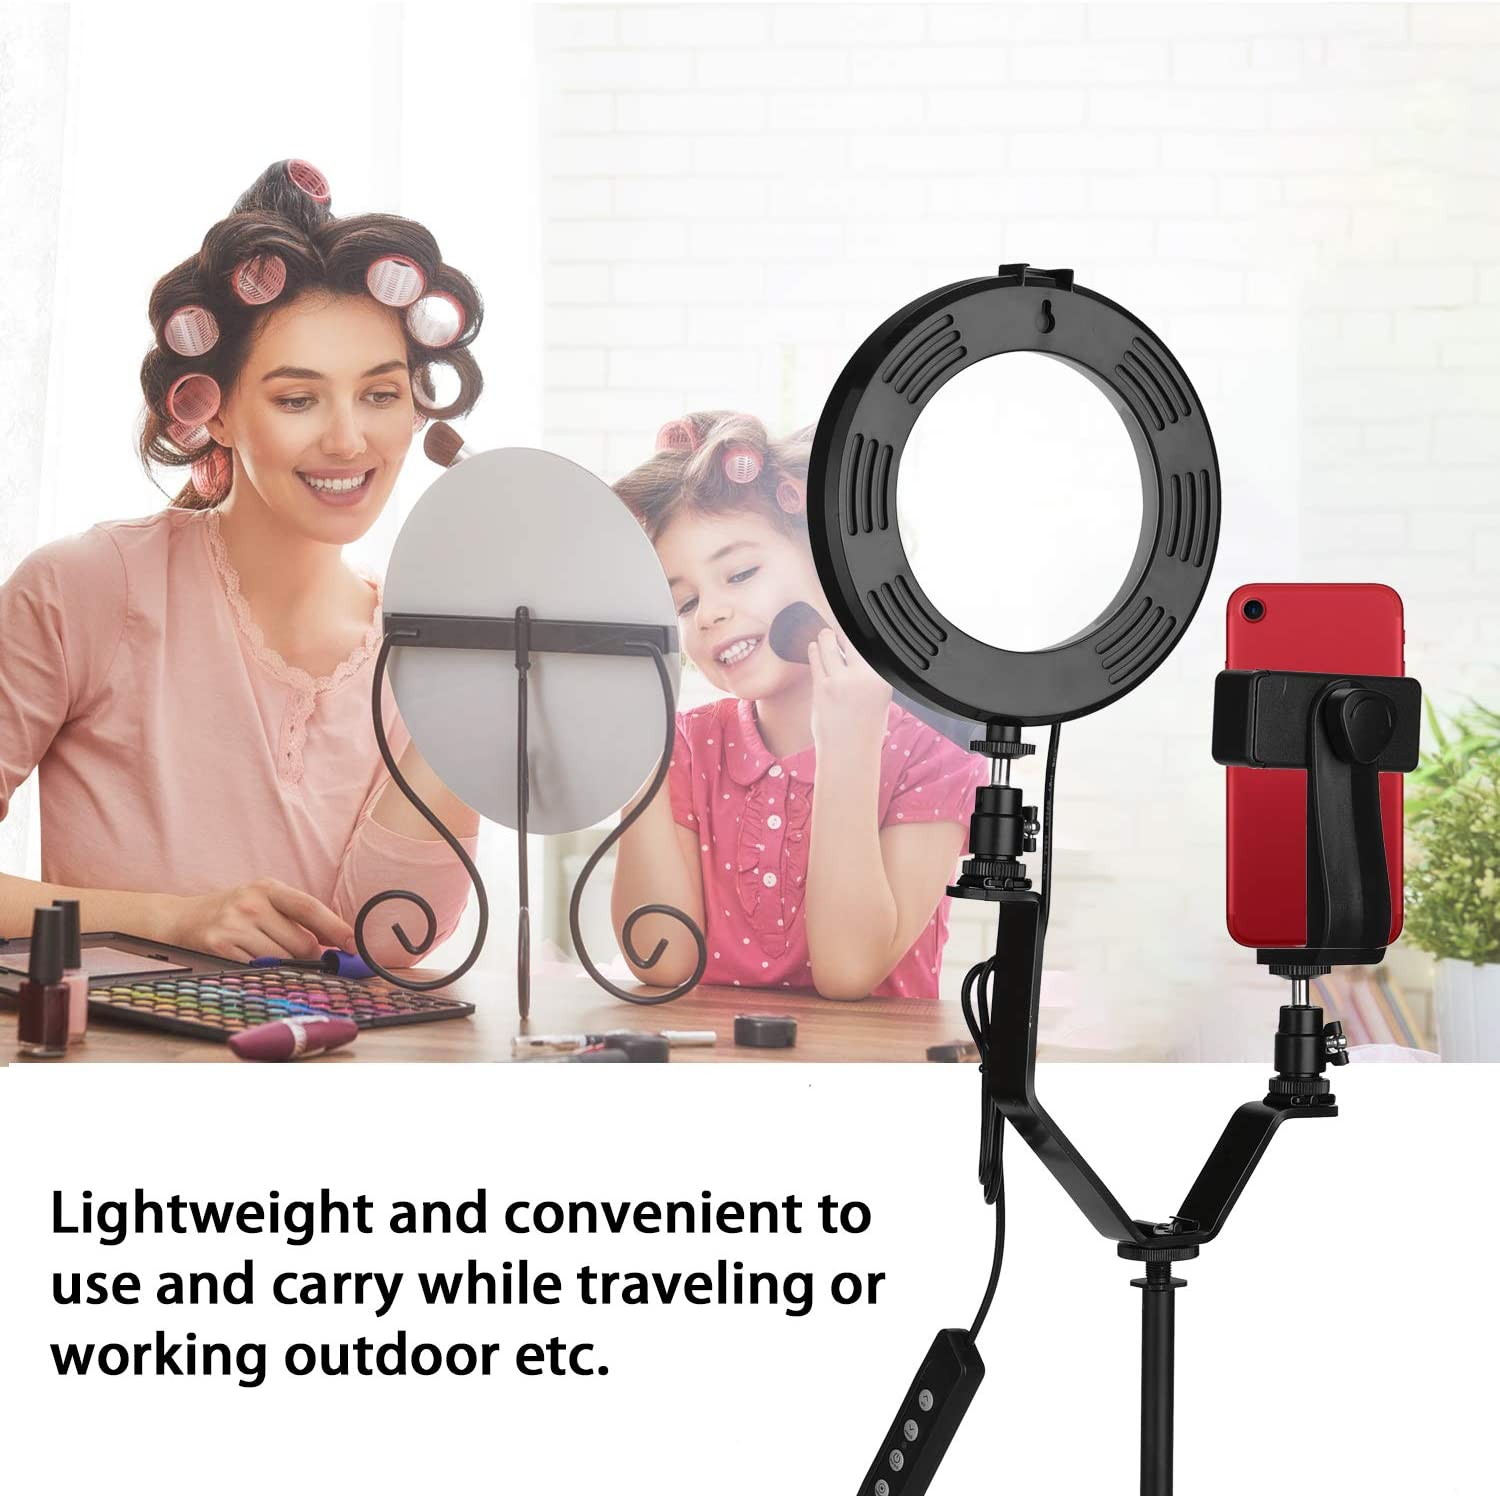 Andoer Ring Light with Stand 6 Inch Selfie Light with Phone Holder Dimmable 3-Color LED Selfie Round Light USB Interface for Vlogging YouTube Video Shooting Make-up Selfie